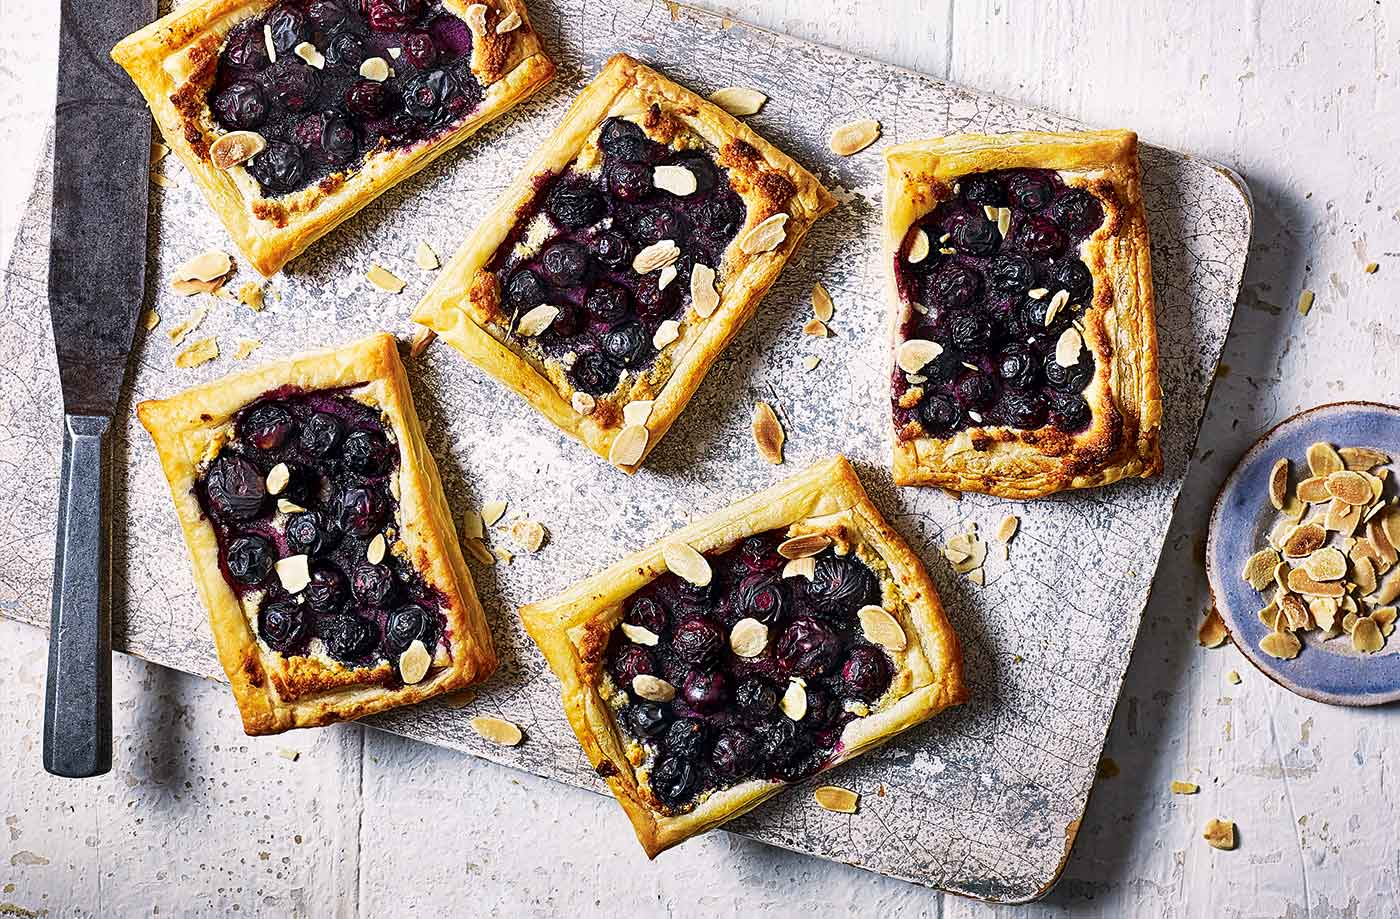 Blueberry Bakewell tarts recipe